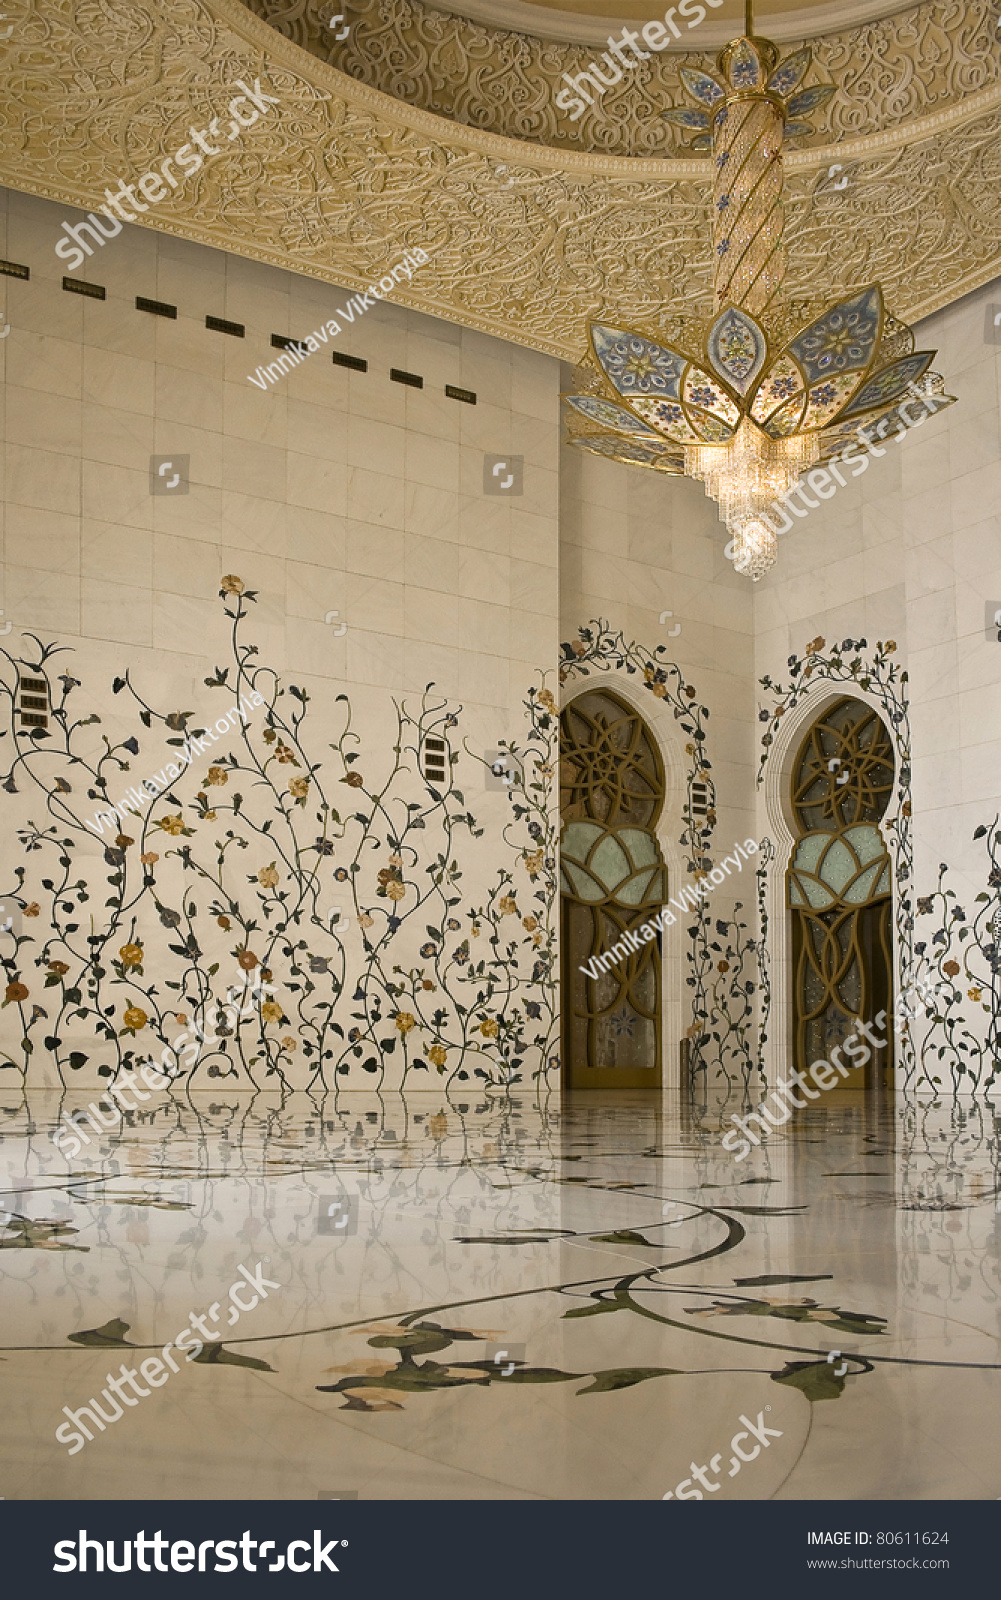 Abu Dhabi Sheikh Zayed Grand Mosque Beautiful Pattern On The Wall Element Of Interior